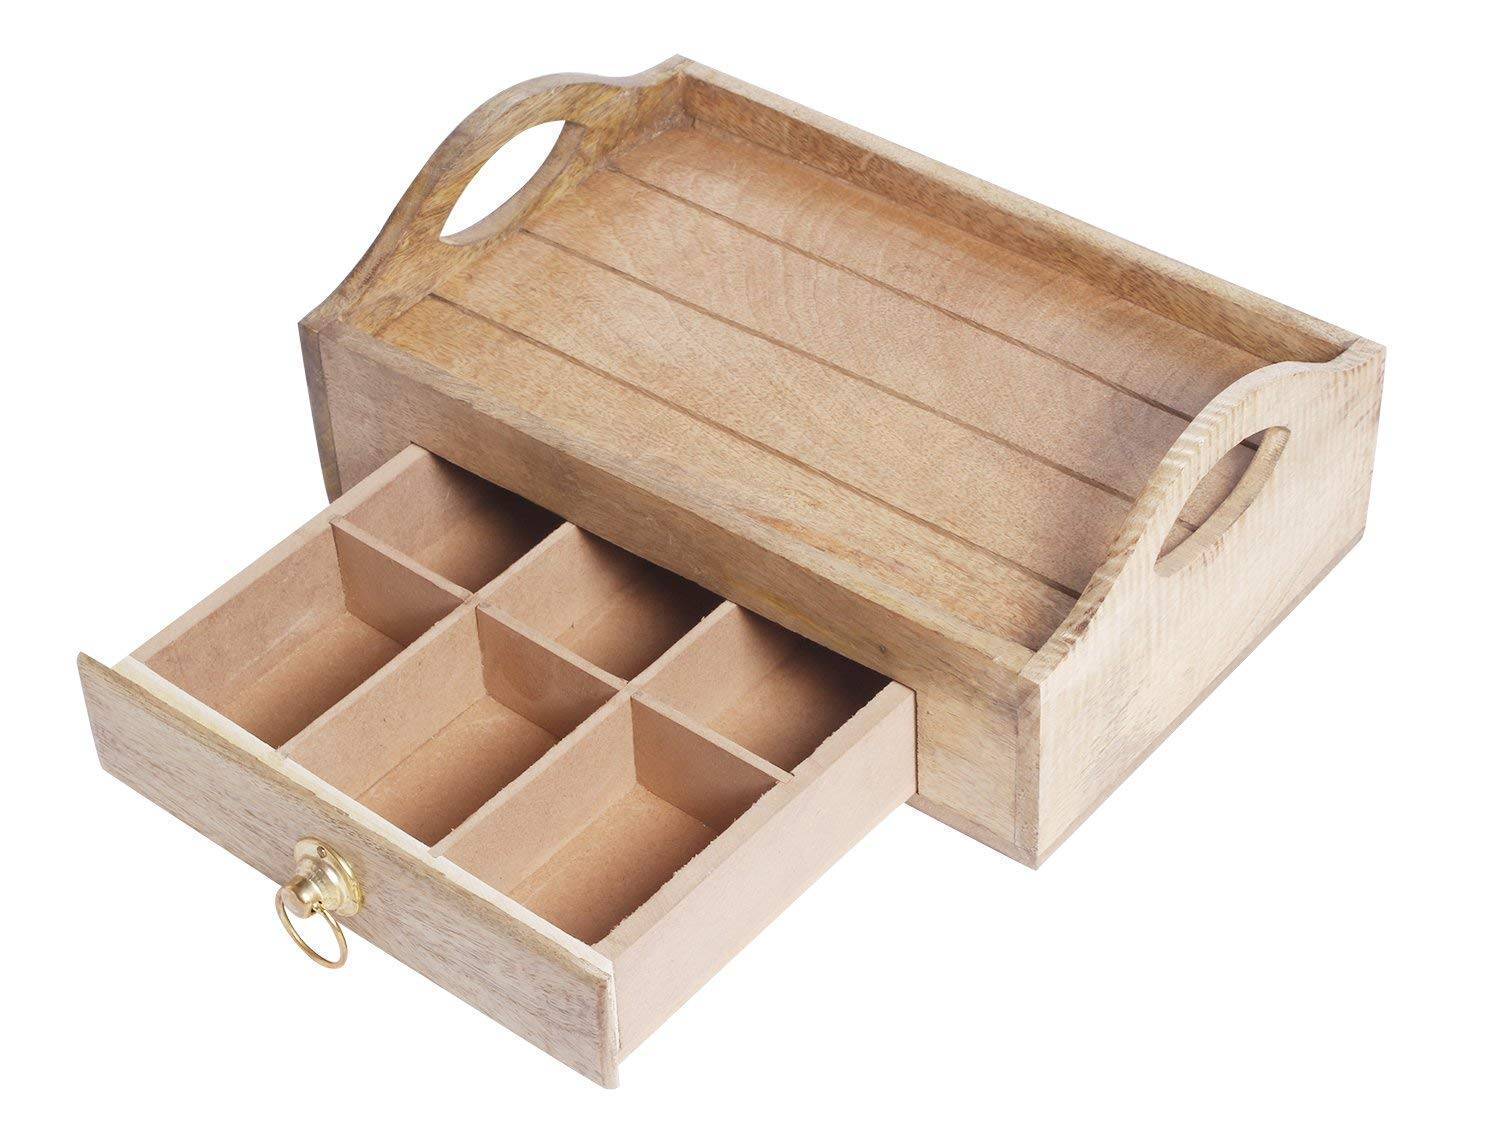 Wooden Tea Bag Storage Chest Box with Tray Handle for Condiment Spice Vintage Rustic Kitchen Organizer with 8 Compartments